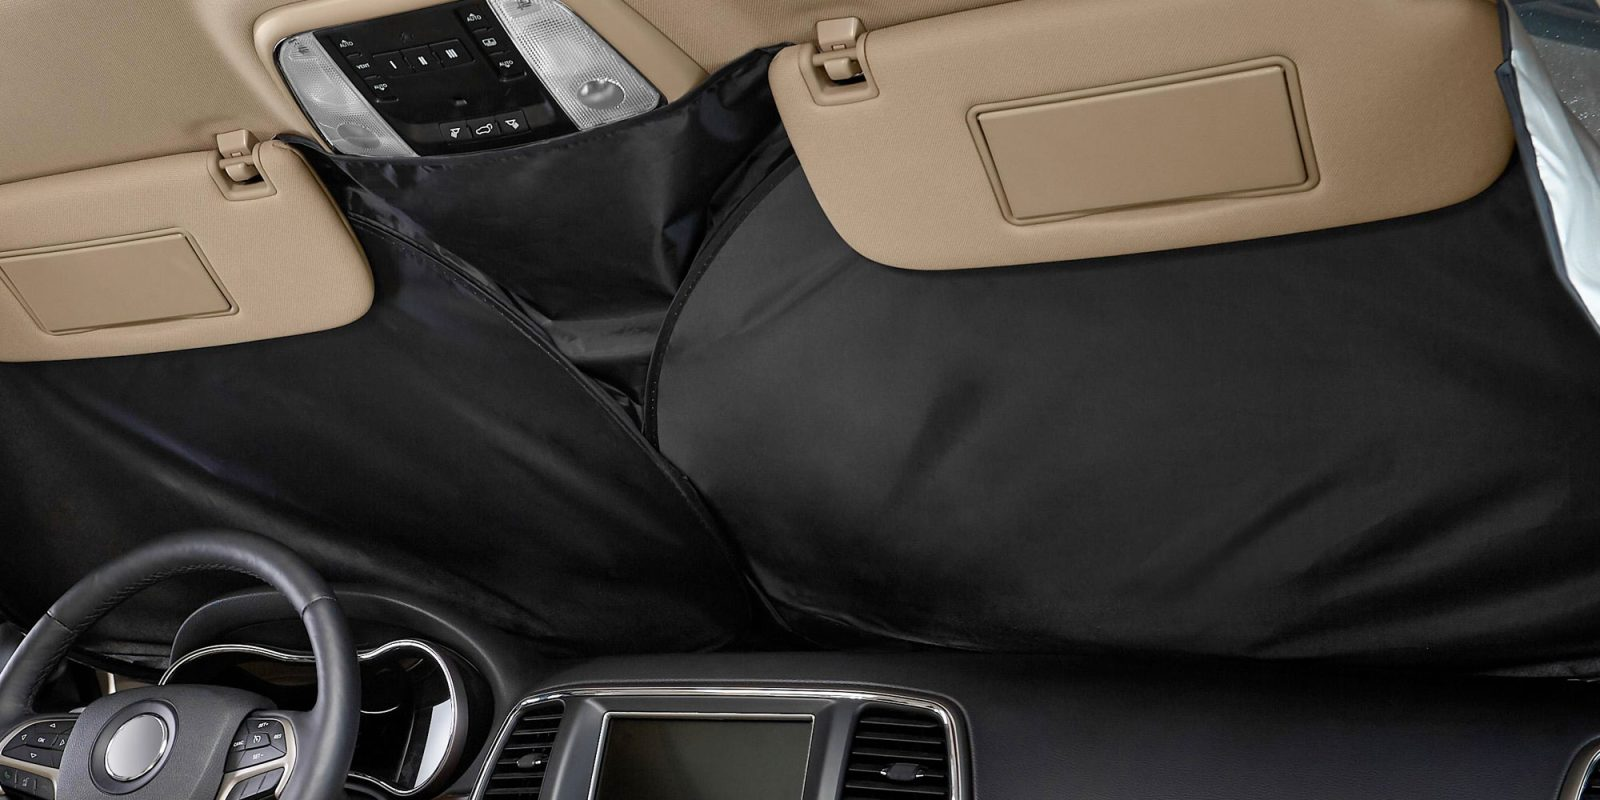 How To Protect Leather Car Seats From Sun